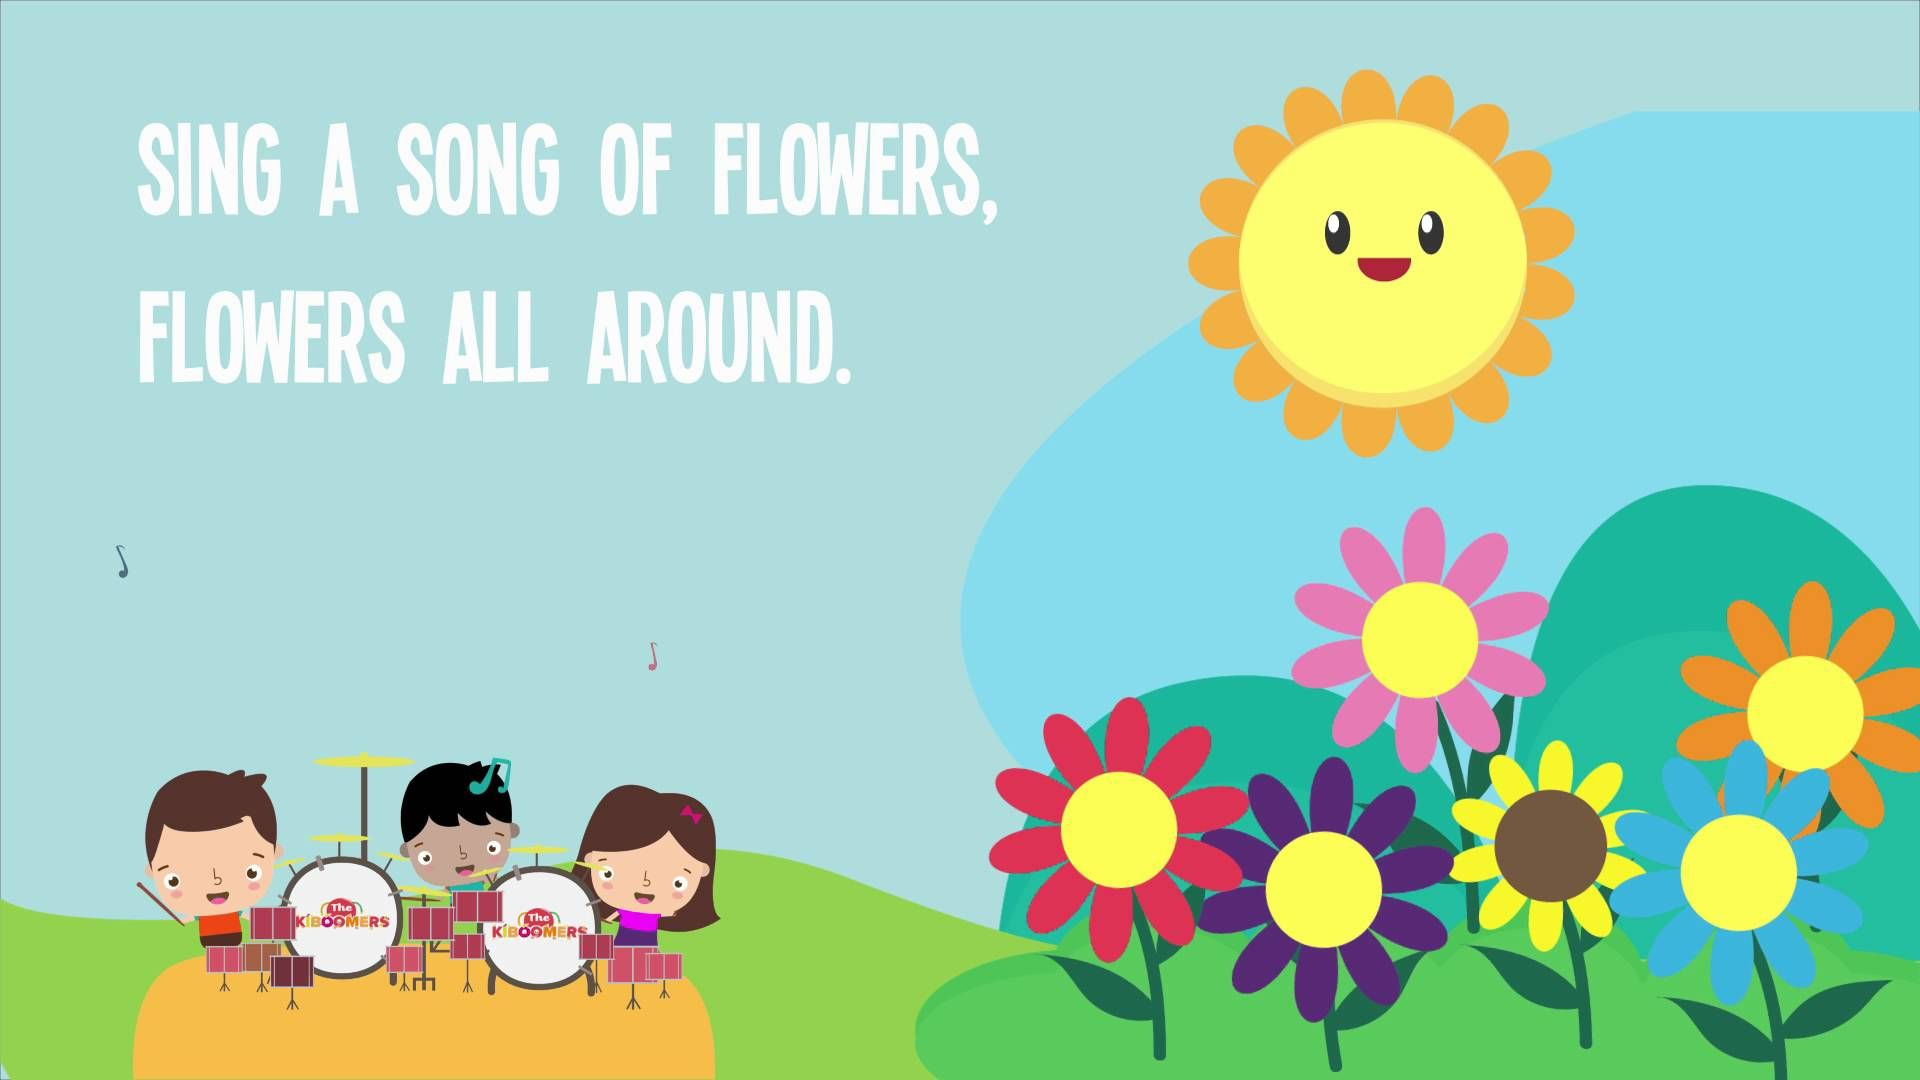 The Kiboomers! Sing a Song of Flowers! Lyrics! Nursery